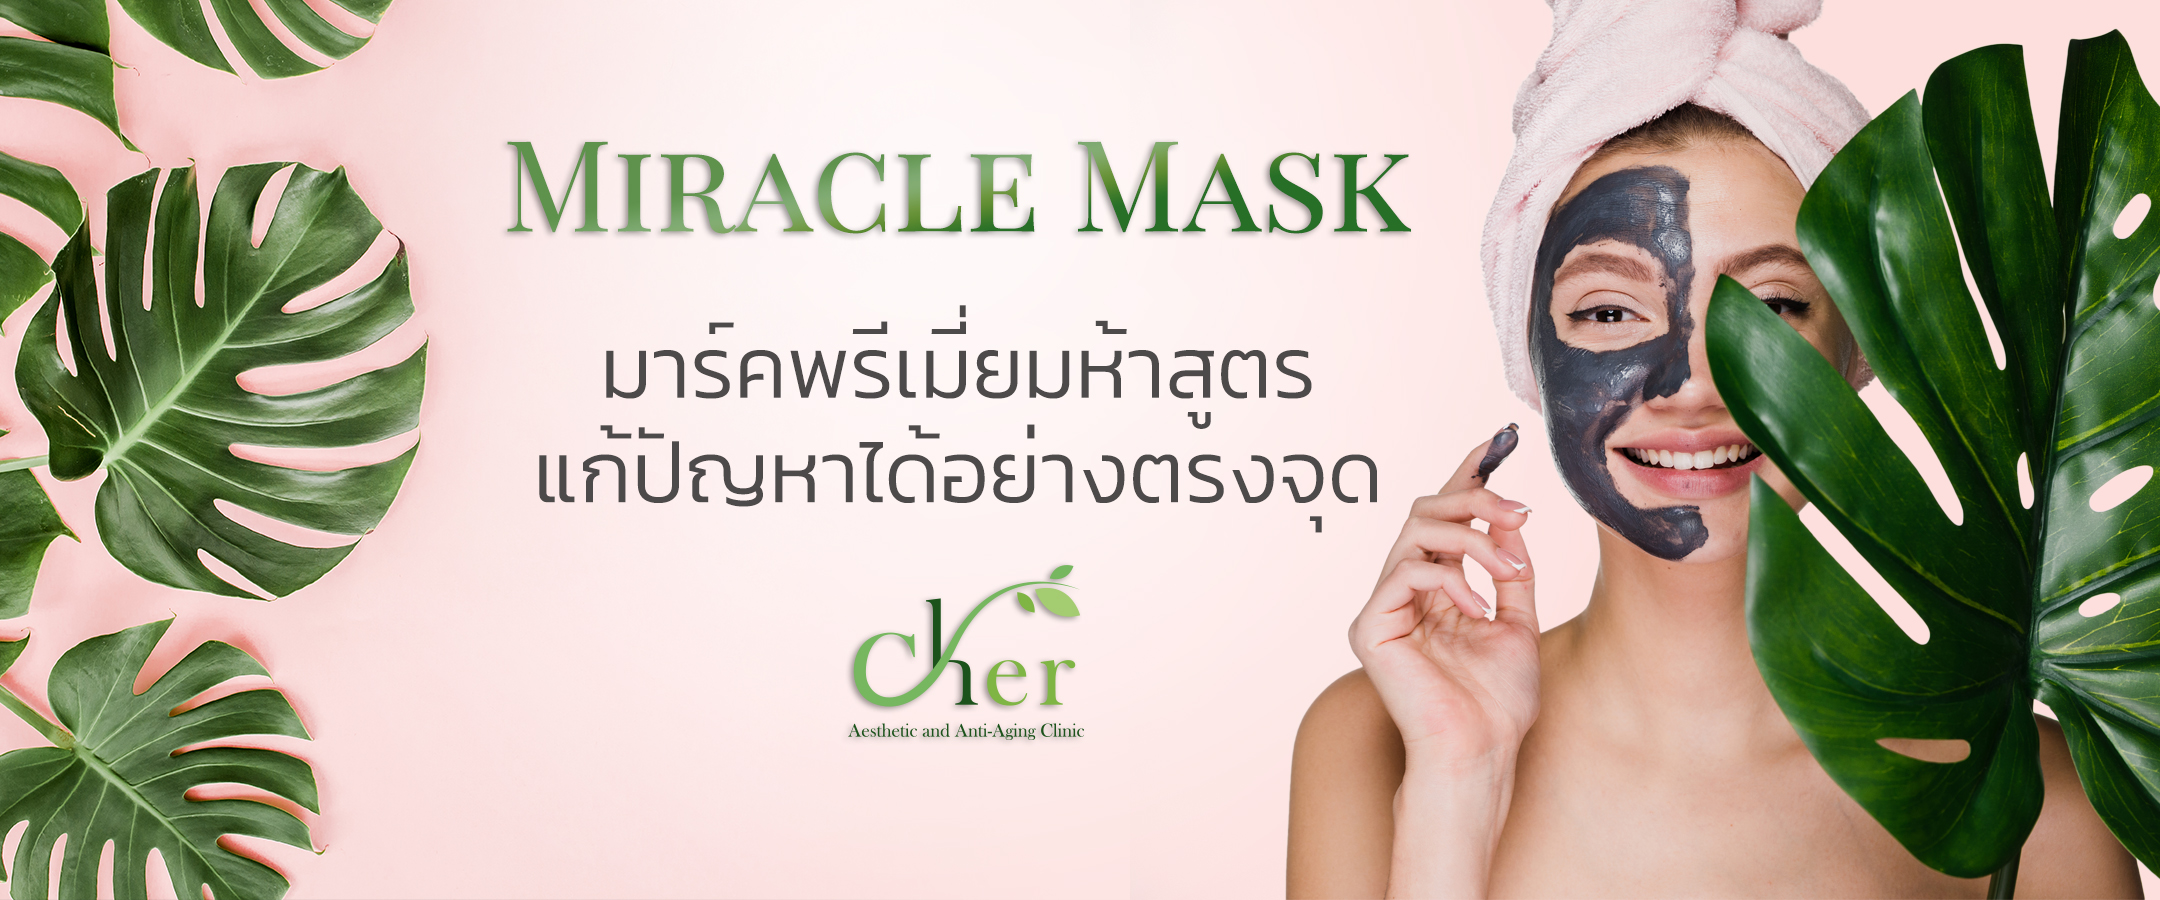 miracle mask L copy.jpg